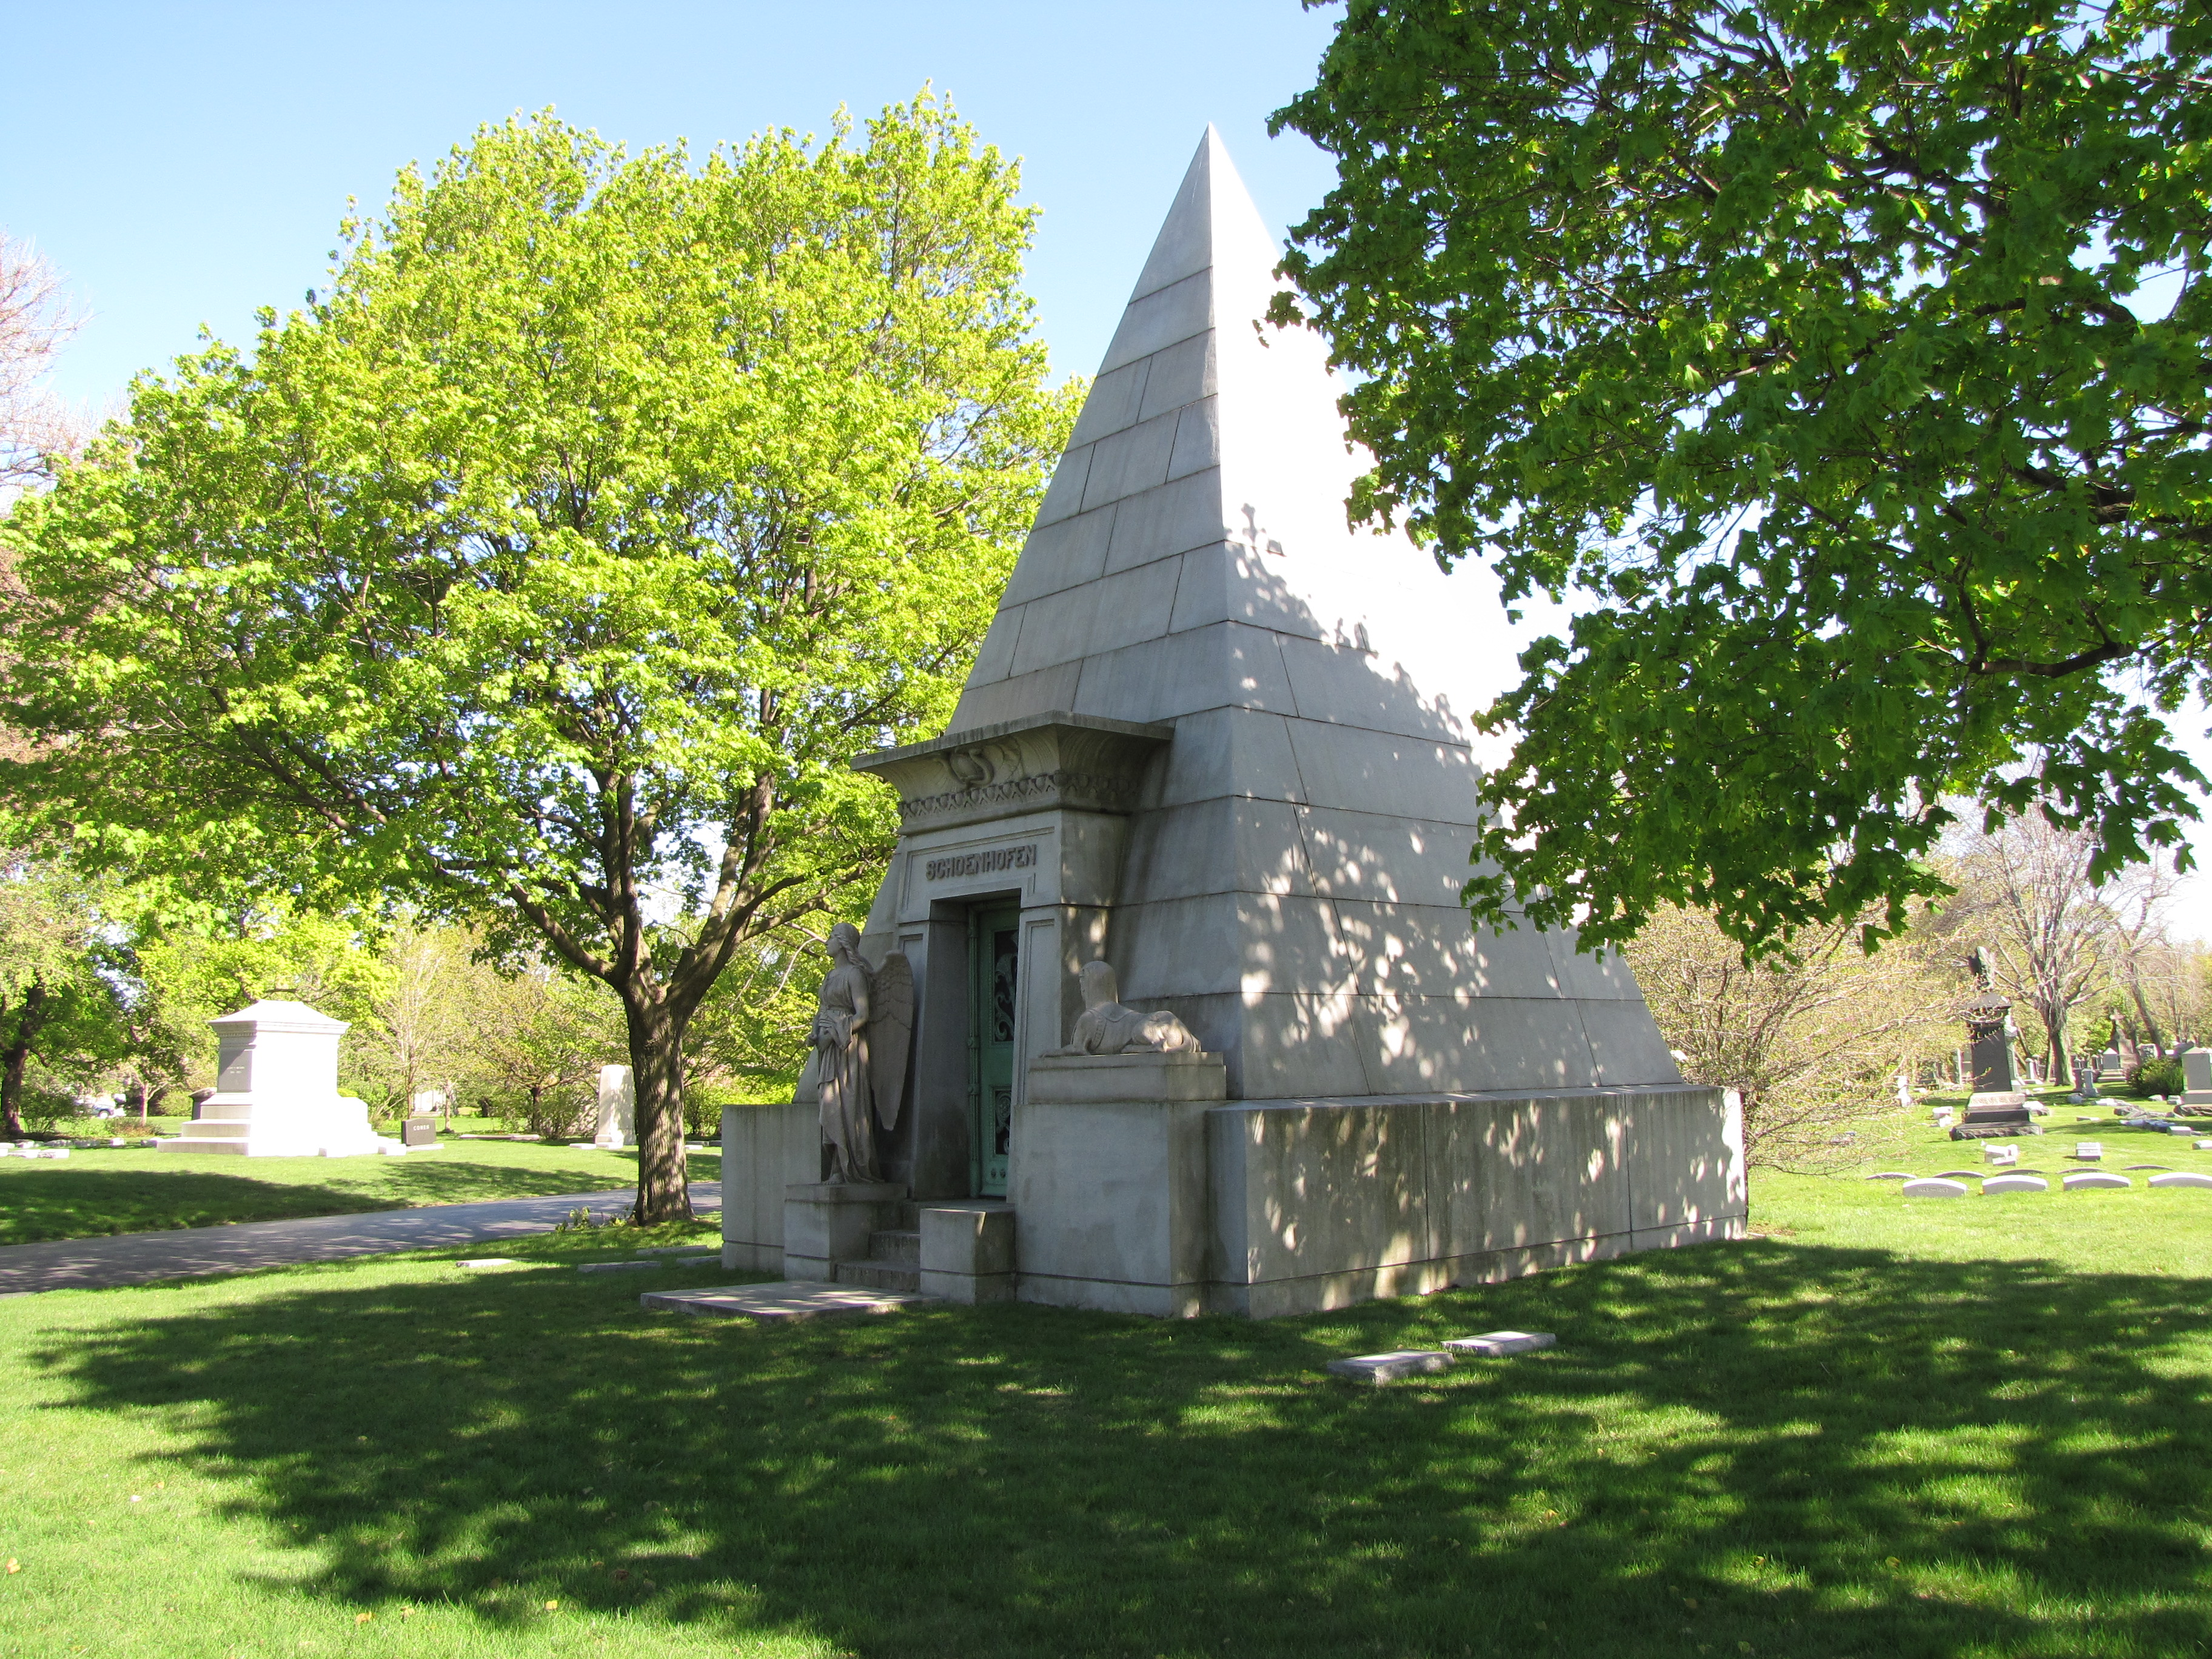 The Schoenhofen Mausoleum In Graceland Cemetery At Chicago Illinois Is Another Grand Example Of Egyptian Revival Funeary Architecture